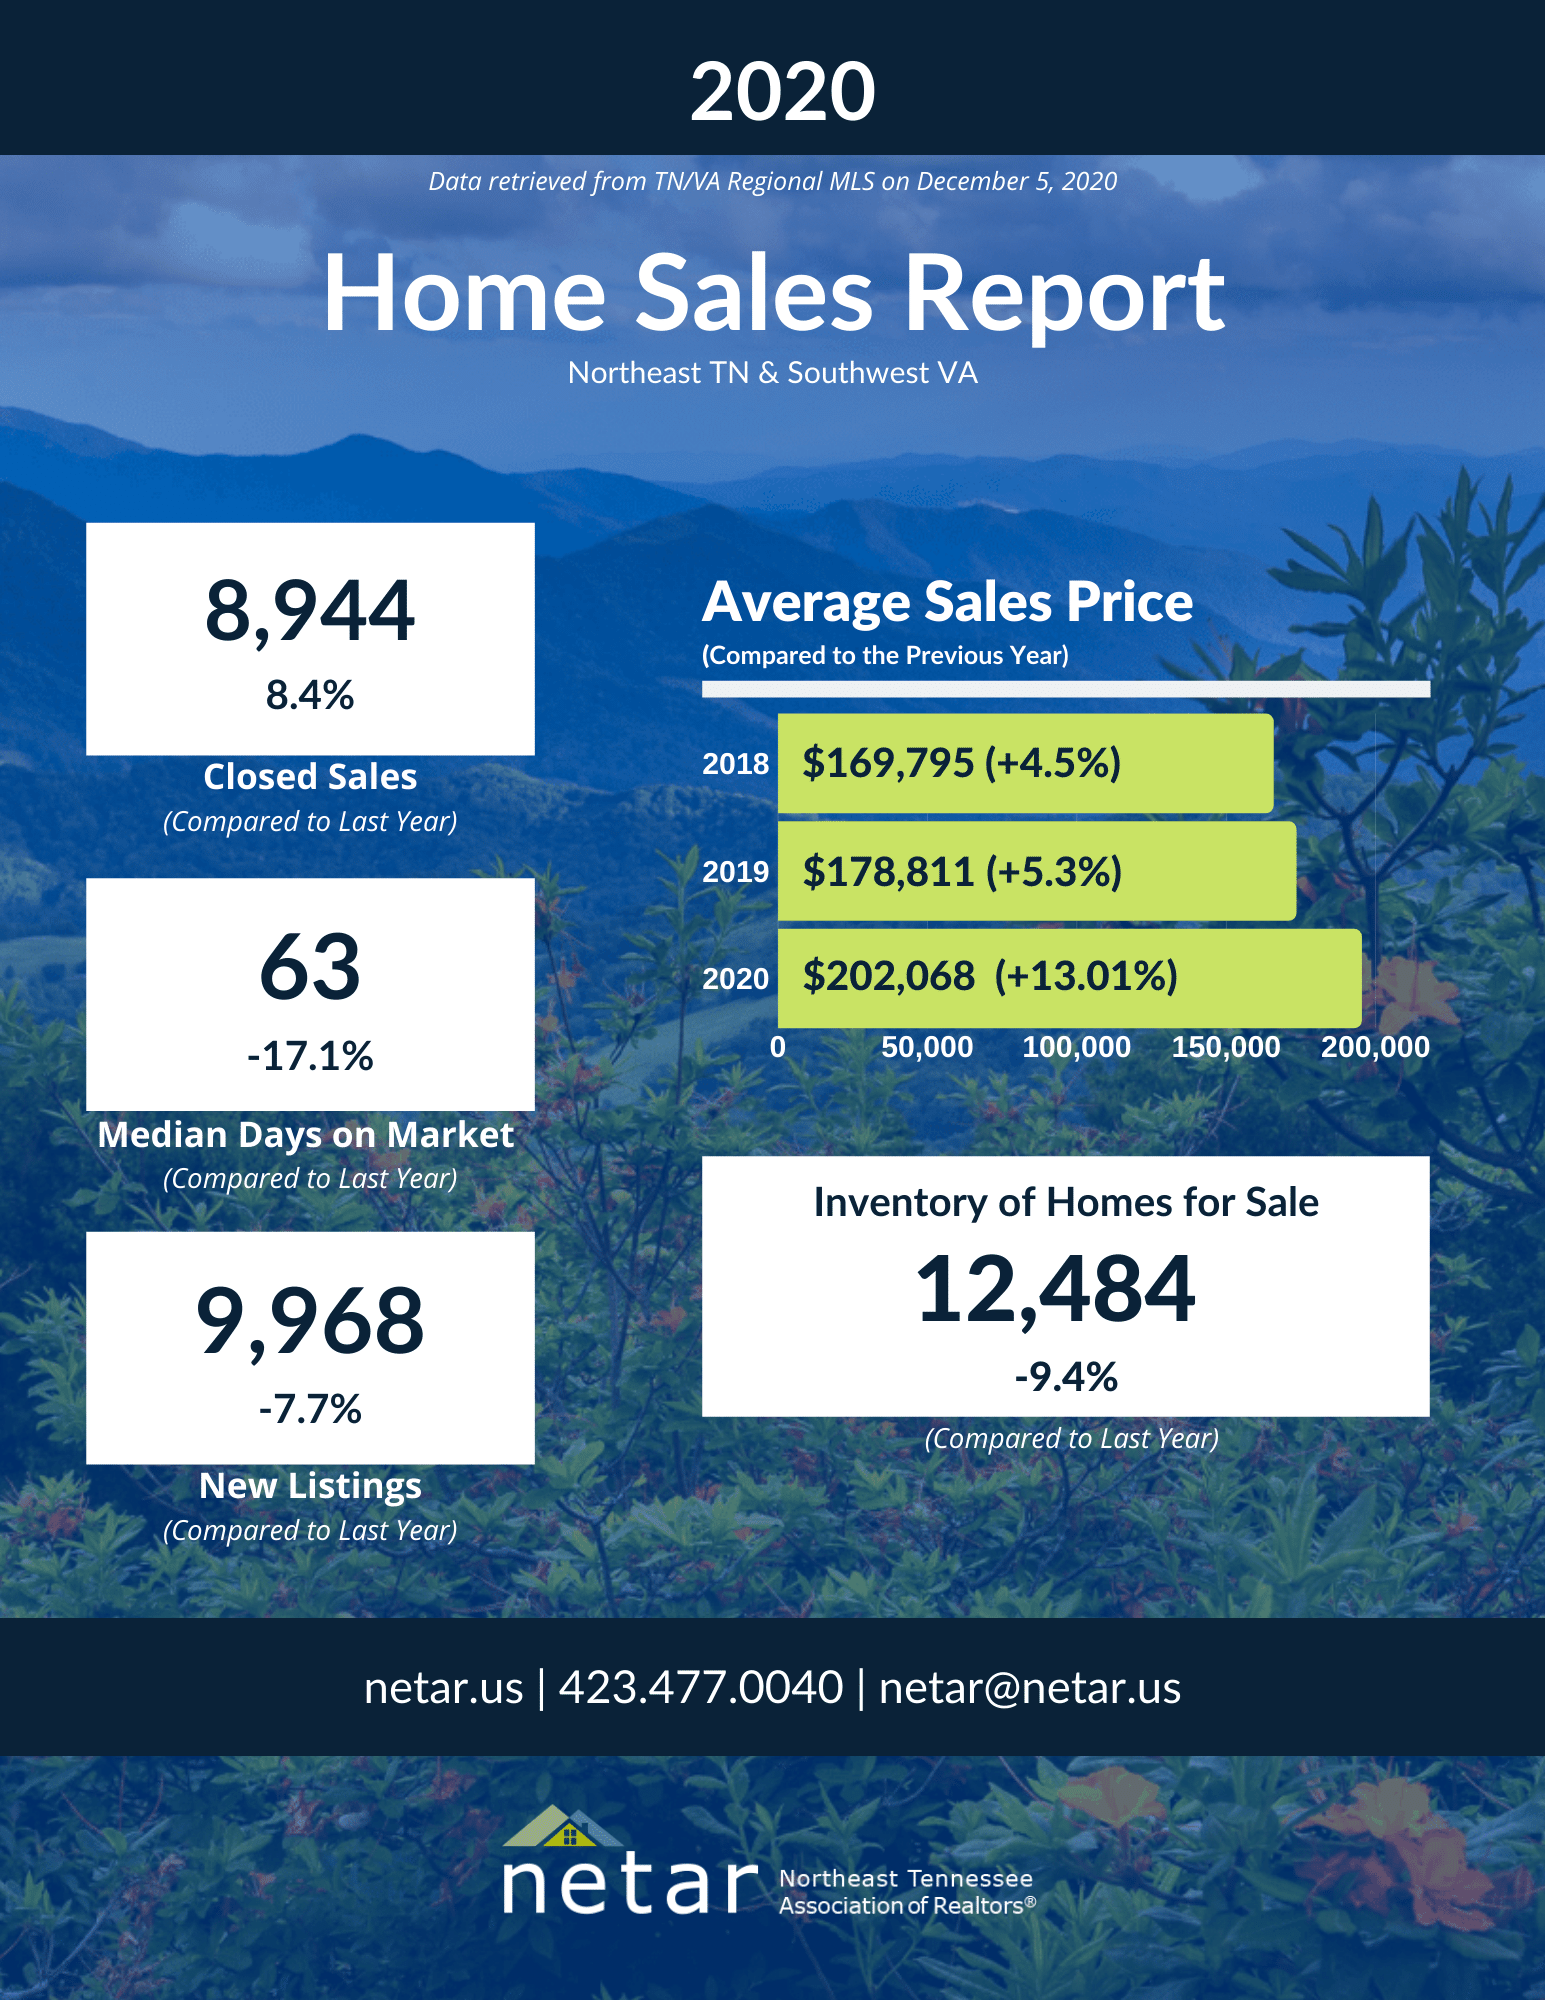 2020 Home Sales Report